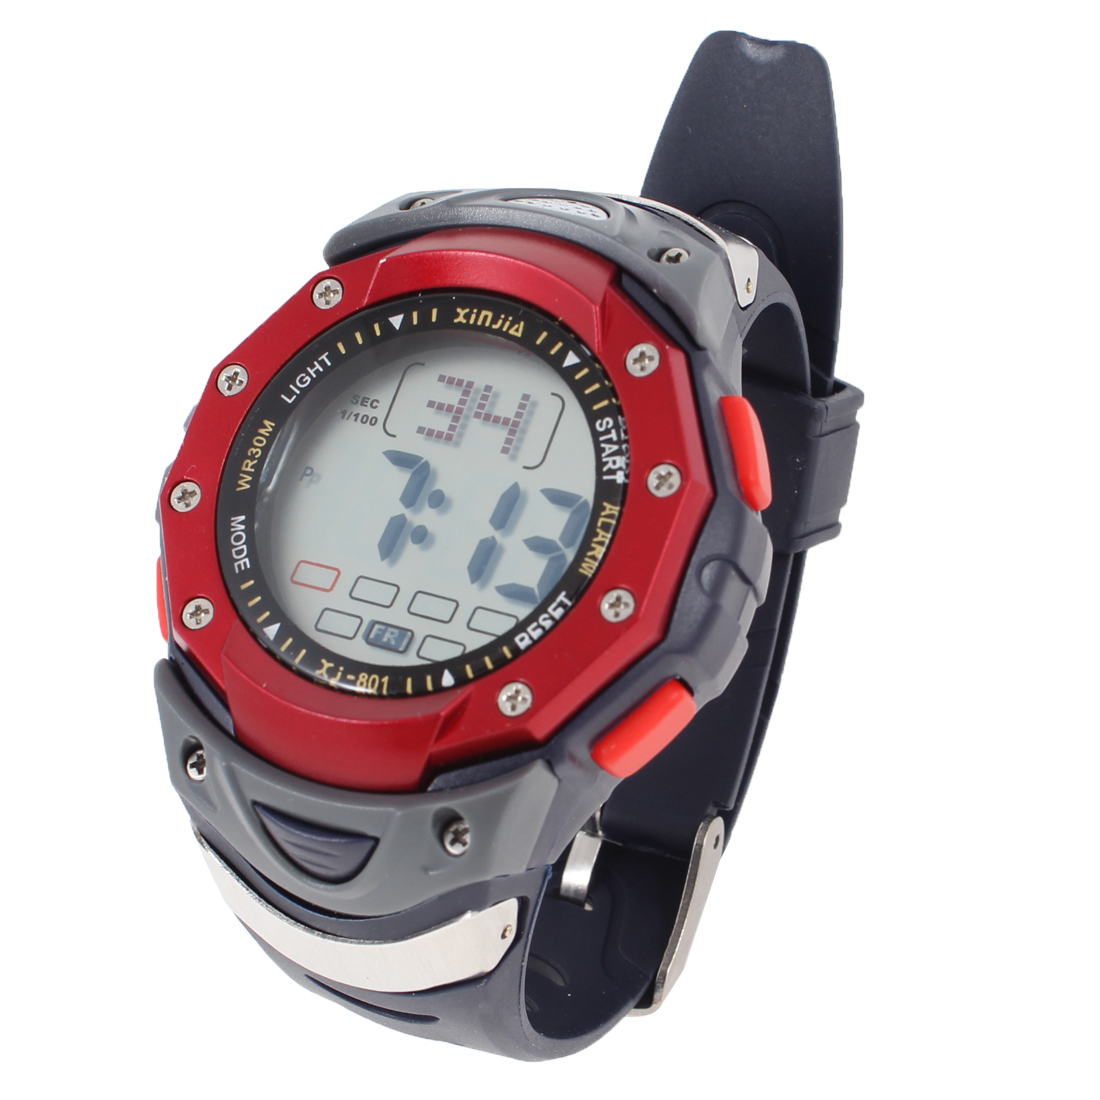 Man Adjustable Band Coldlight LCD Display Stopwatch Sports Watch Red Navy Blue